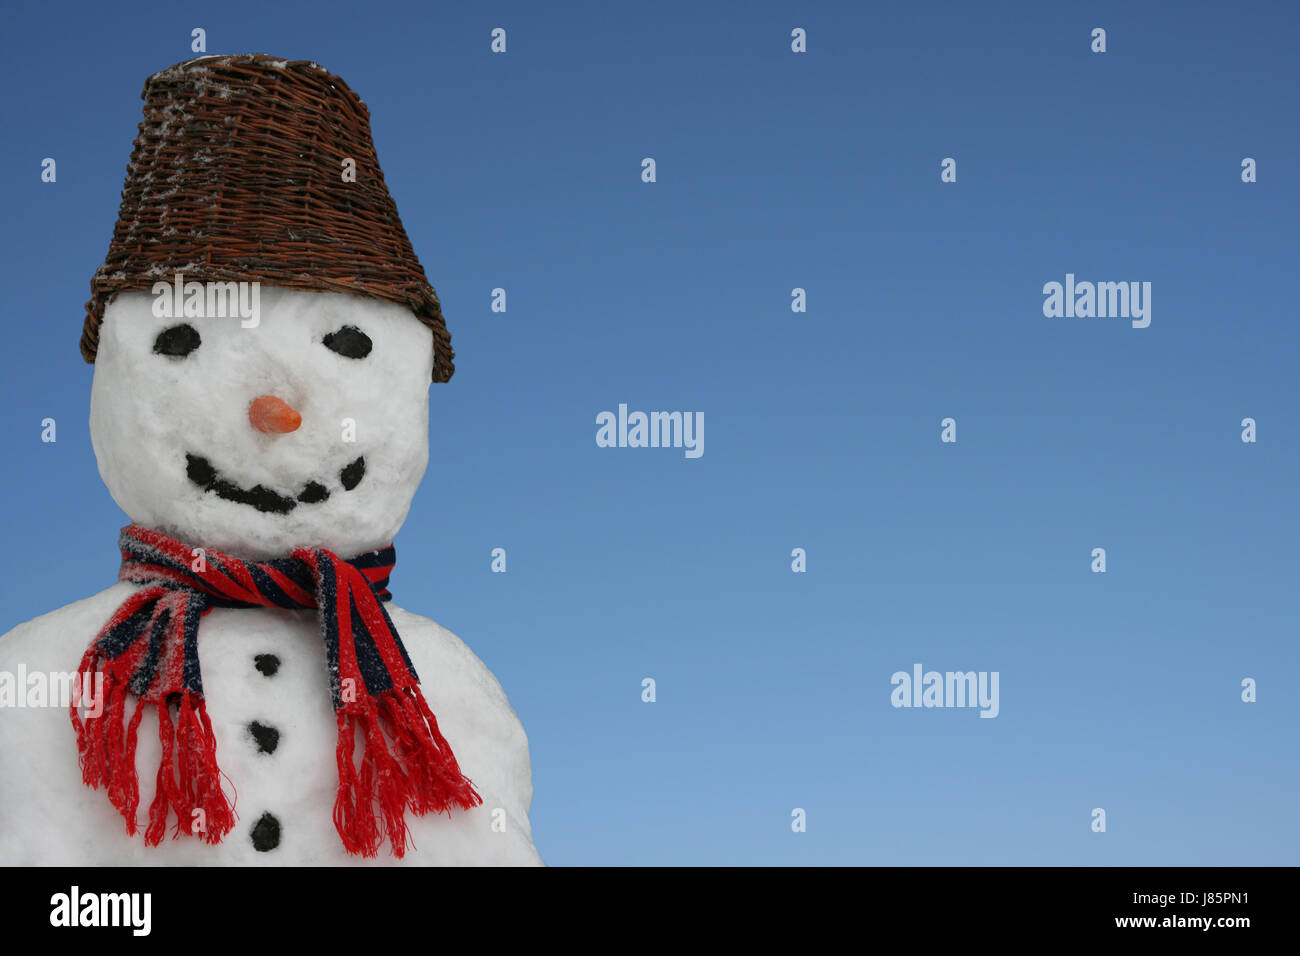 Bad Freienwalde Deko Scheune Winterlage Stockfotos Winterlage Bilder Alamy